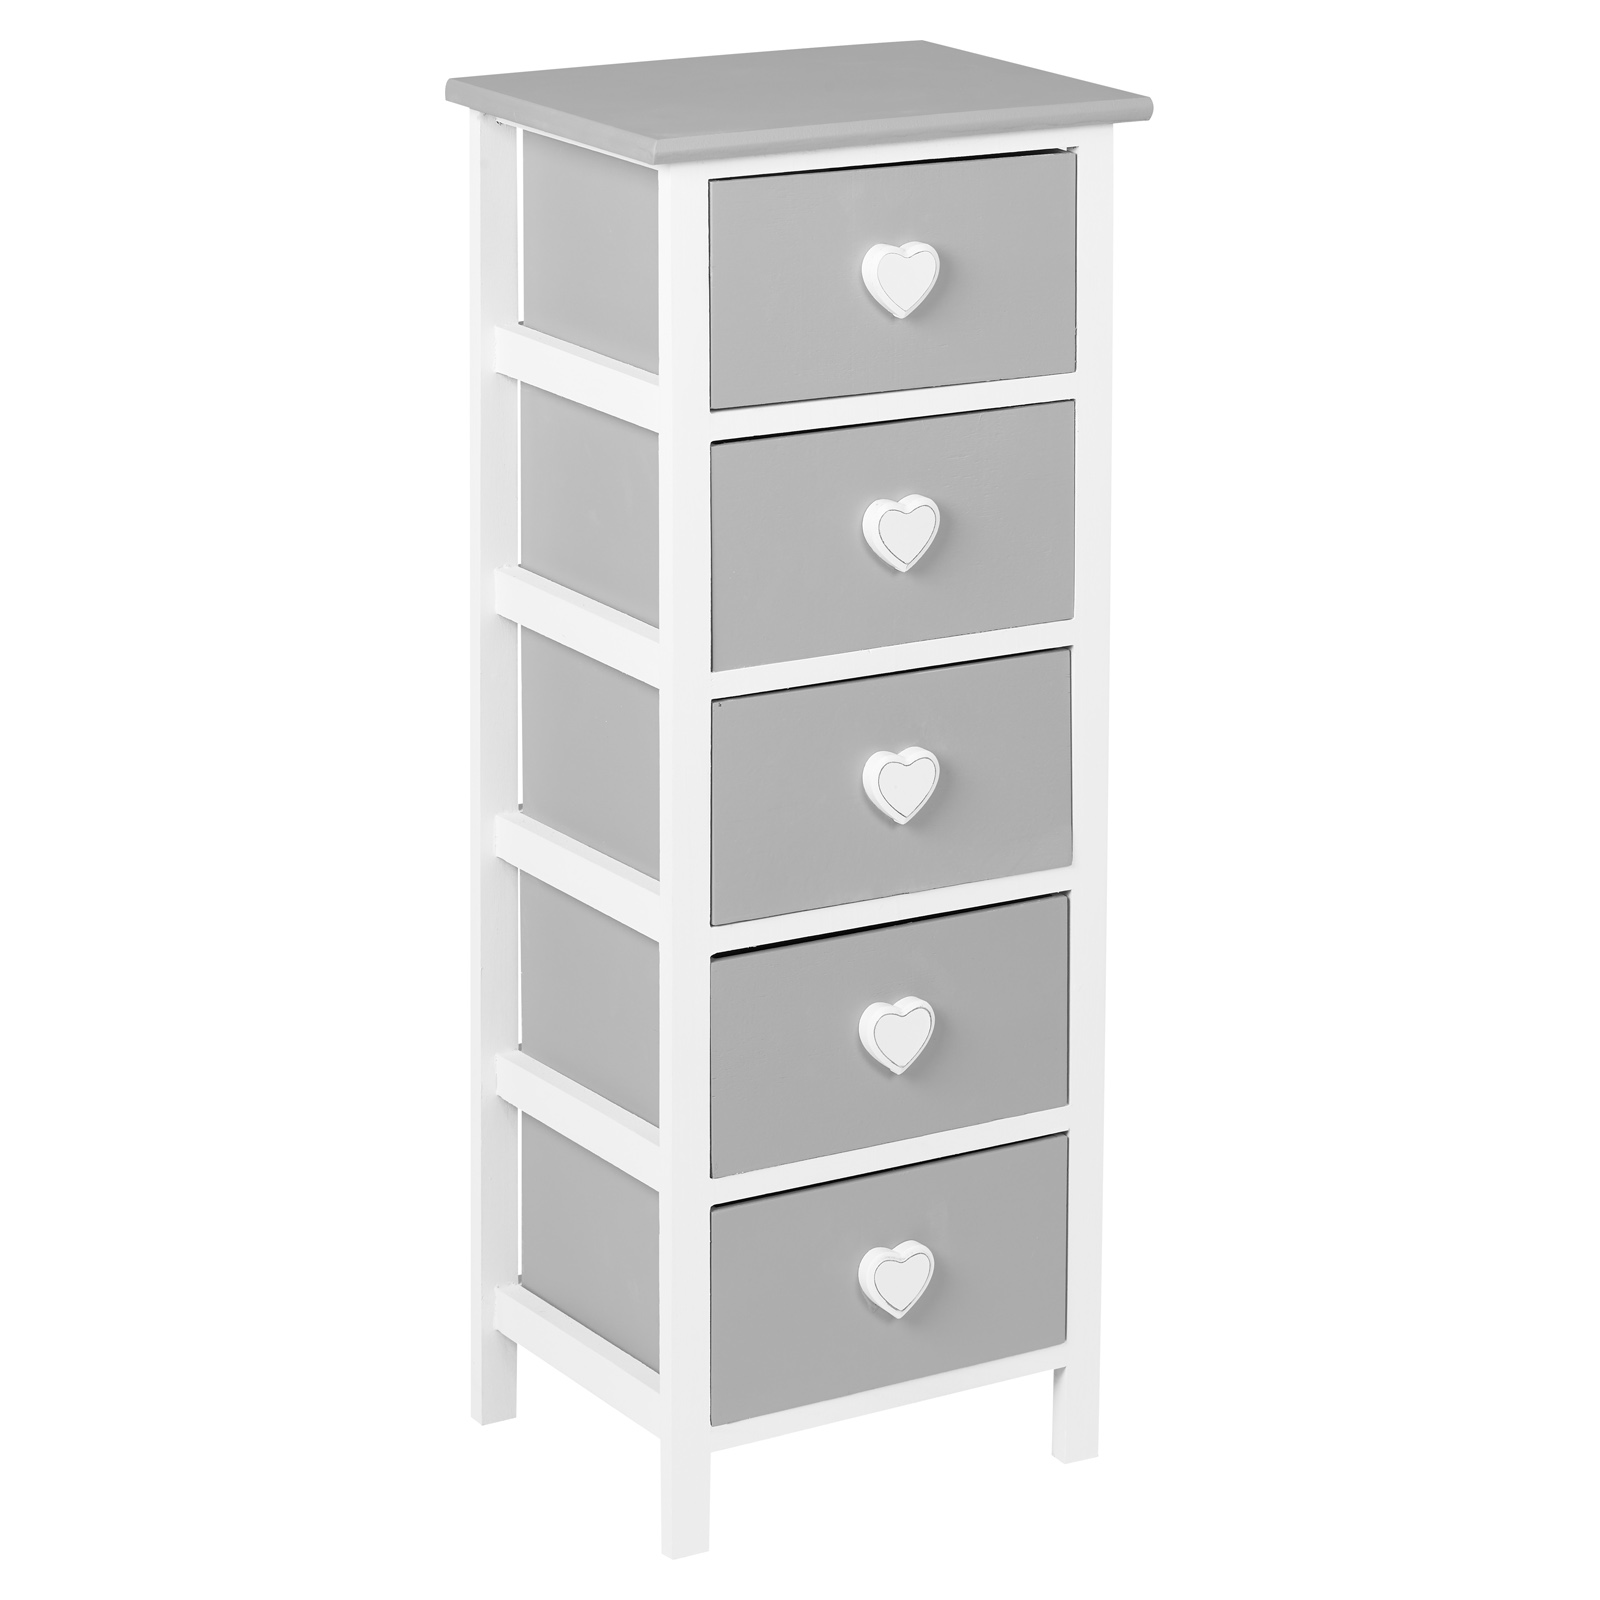 Sentinel Hartleys White & Grey 5 Drawer Heart Storage Unitchest